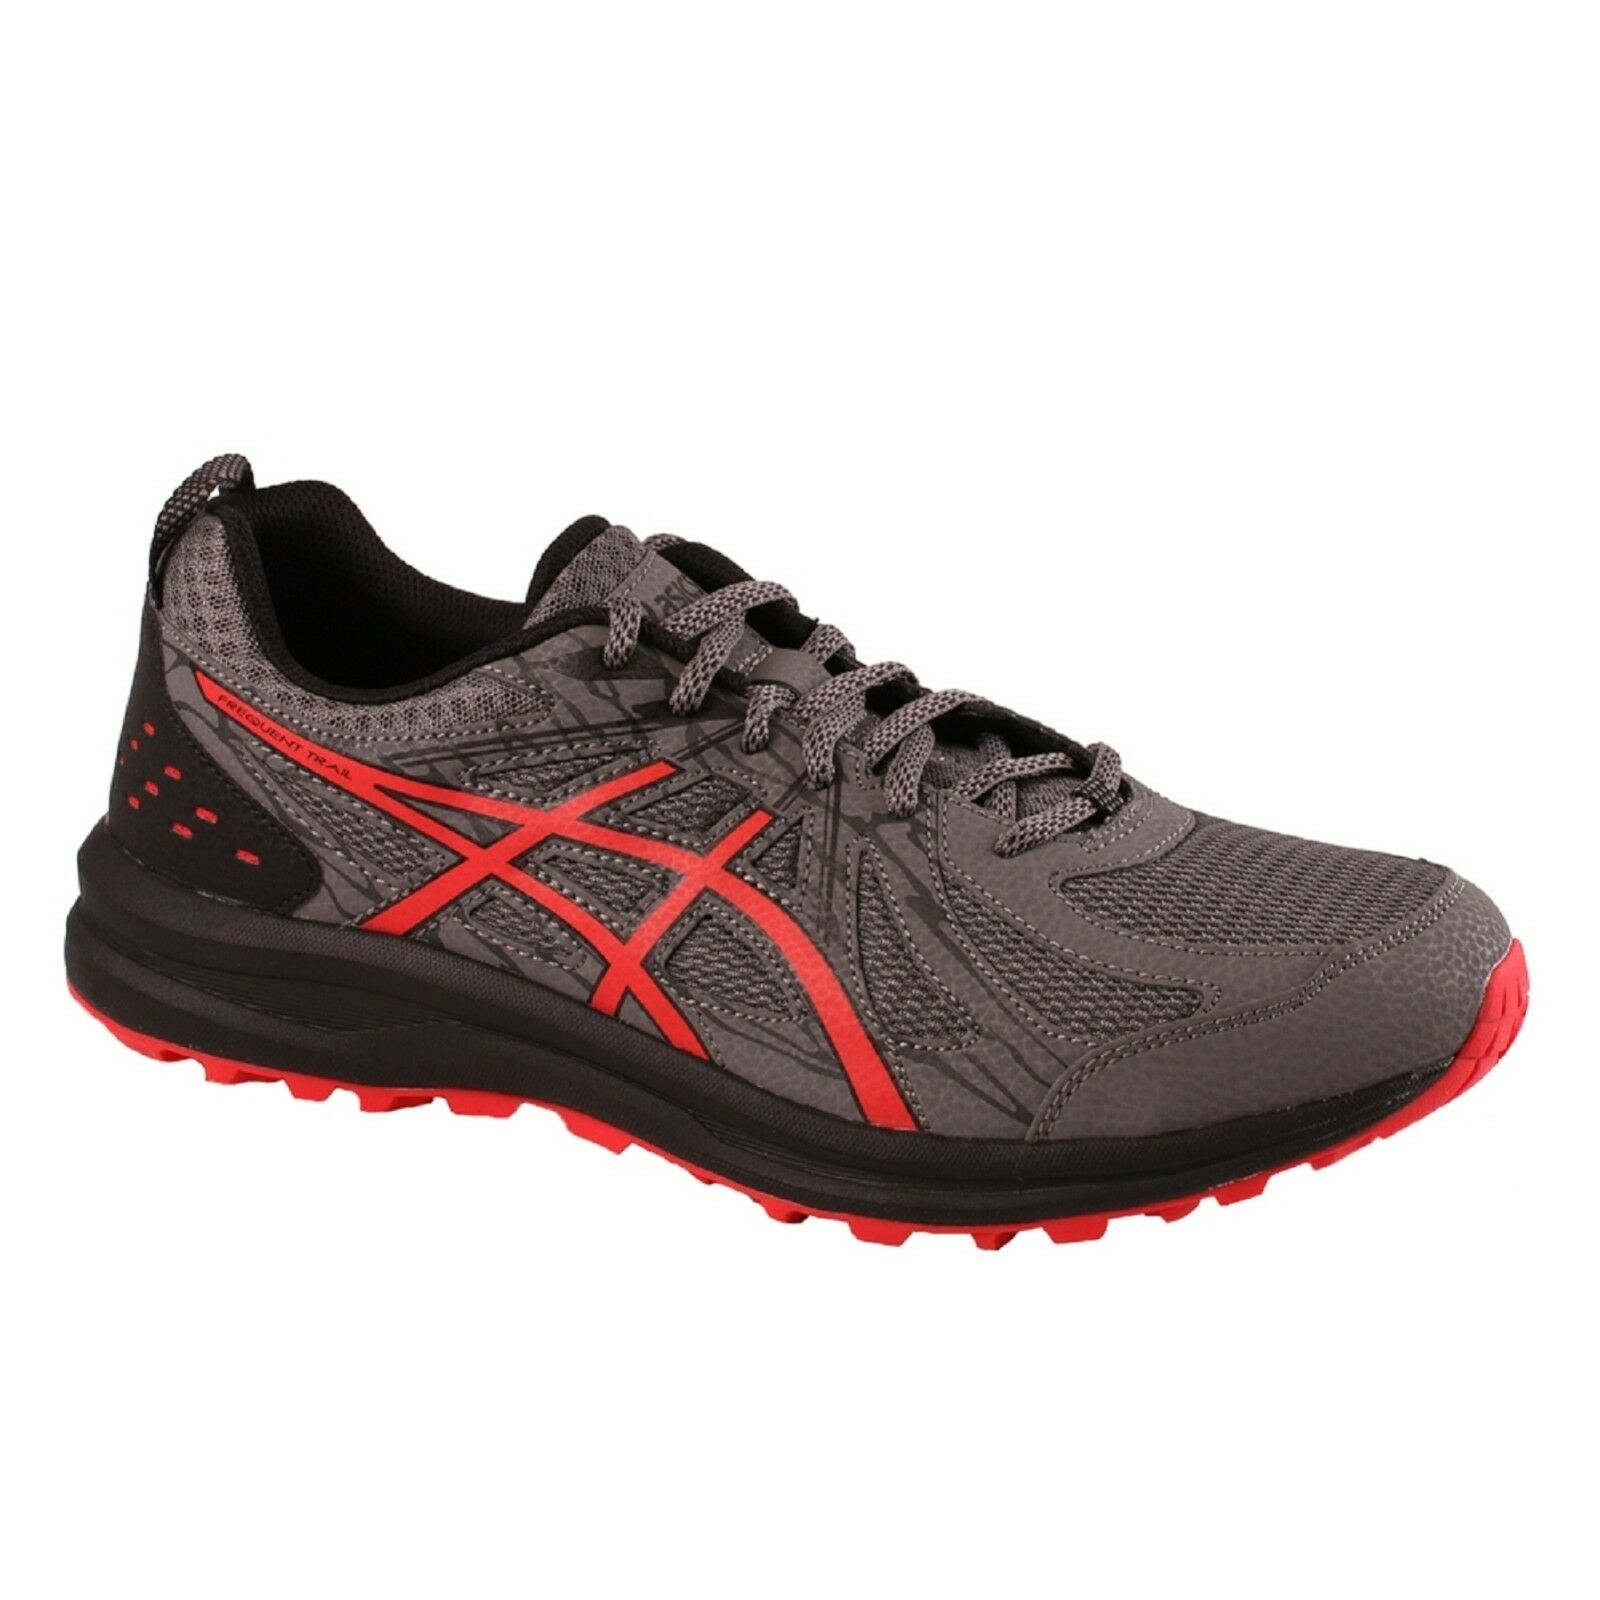 Men's Asics FREQUENT TRAIL (4E) 1011A138/020 Carbon Lace-Up Trail Running Shoes